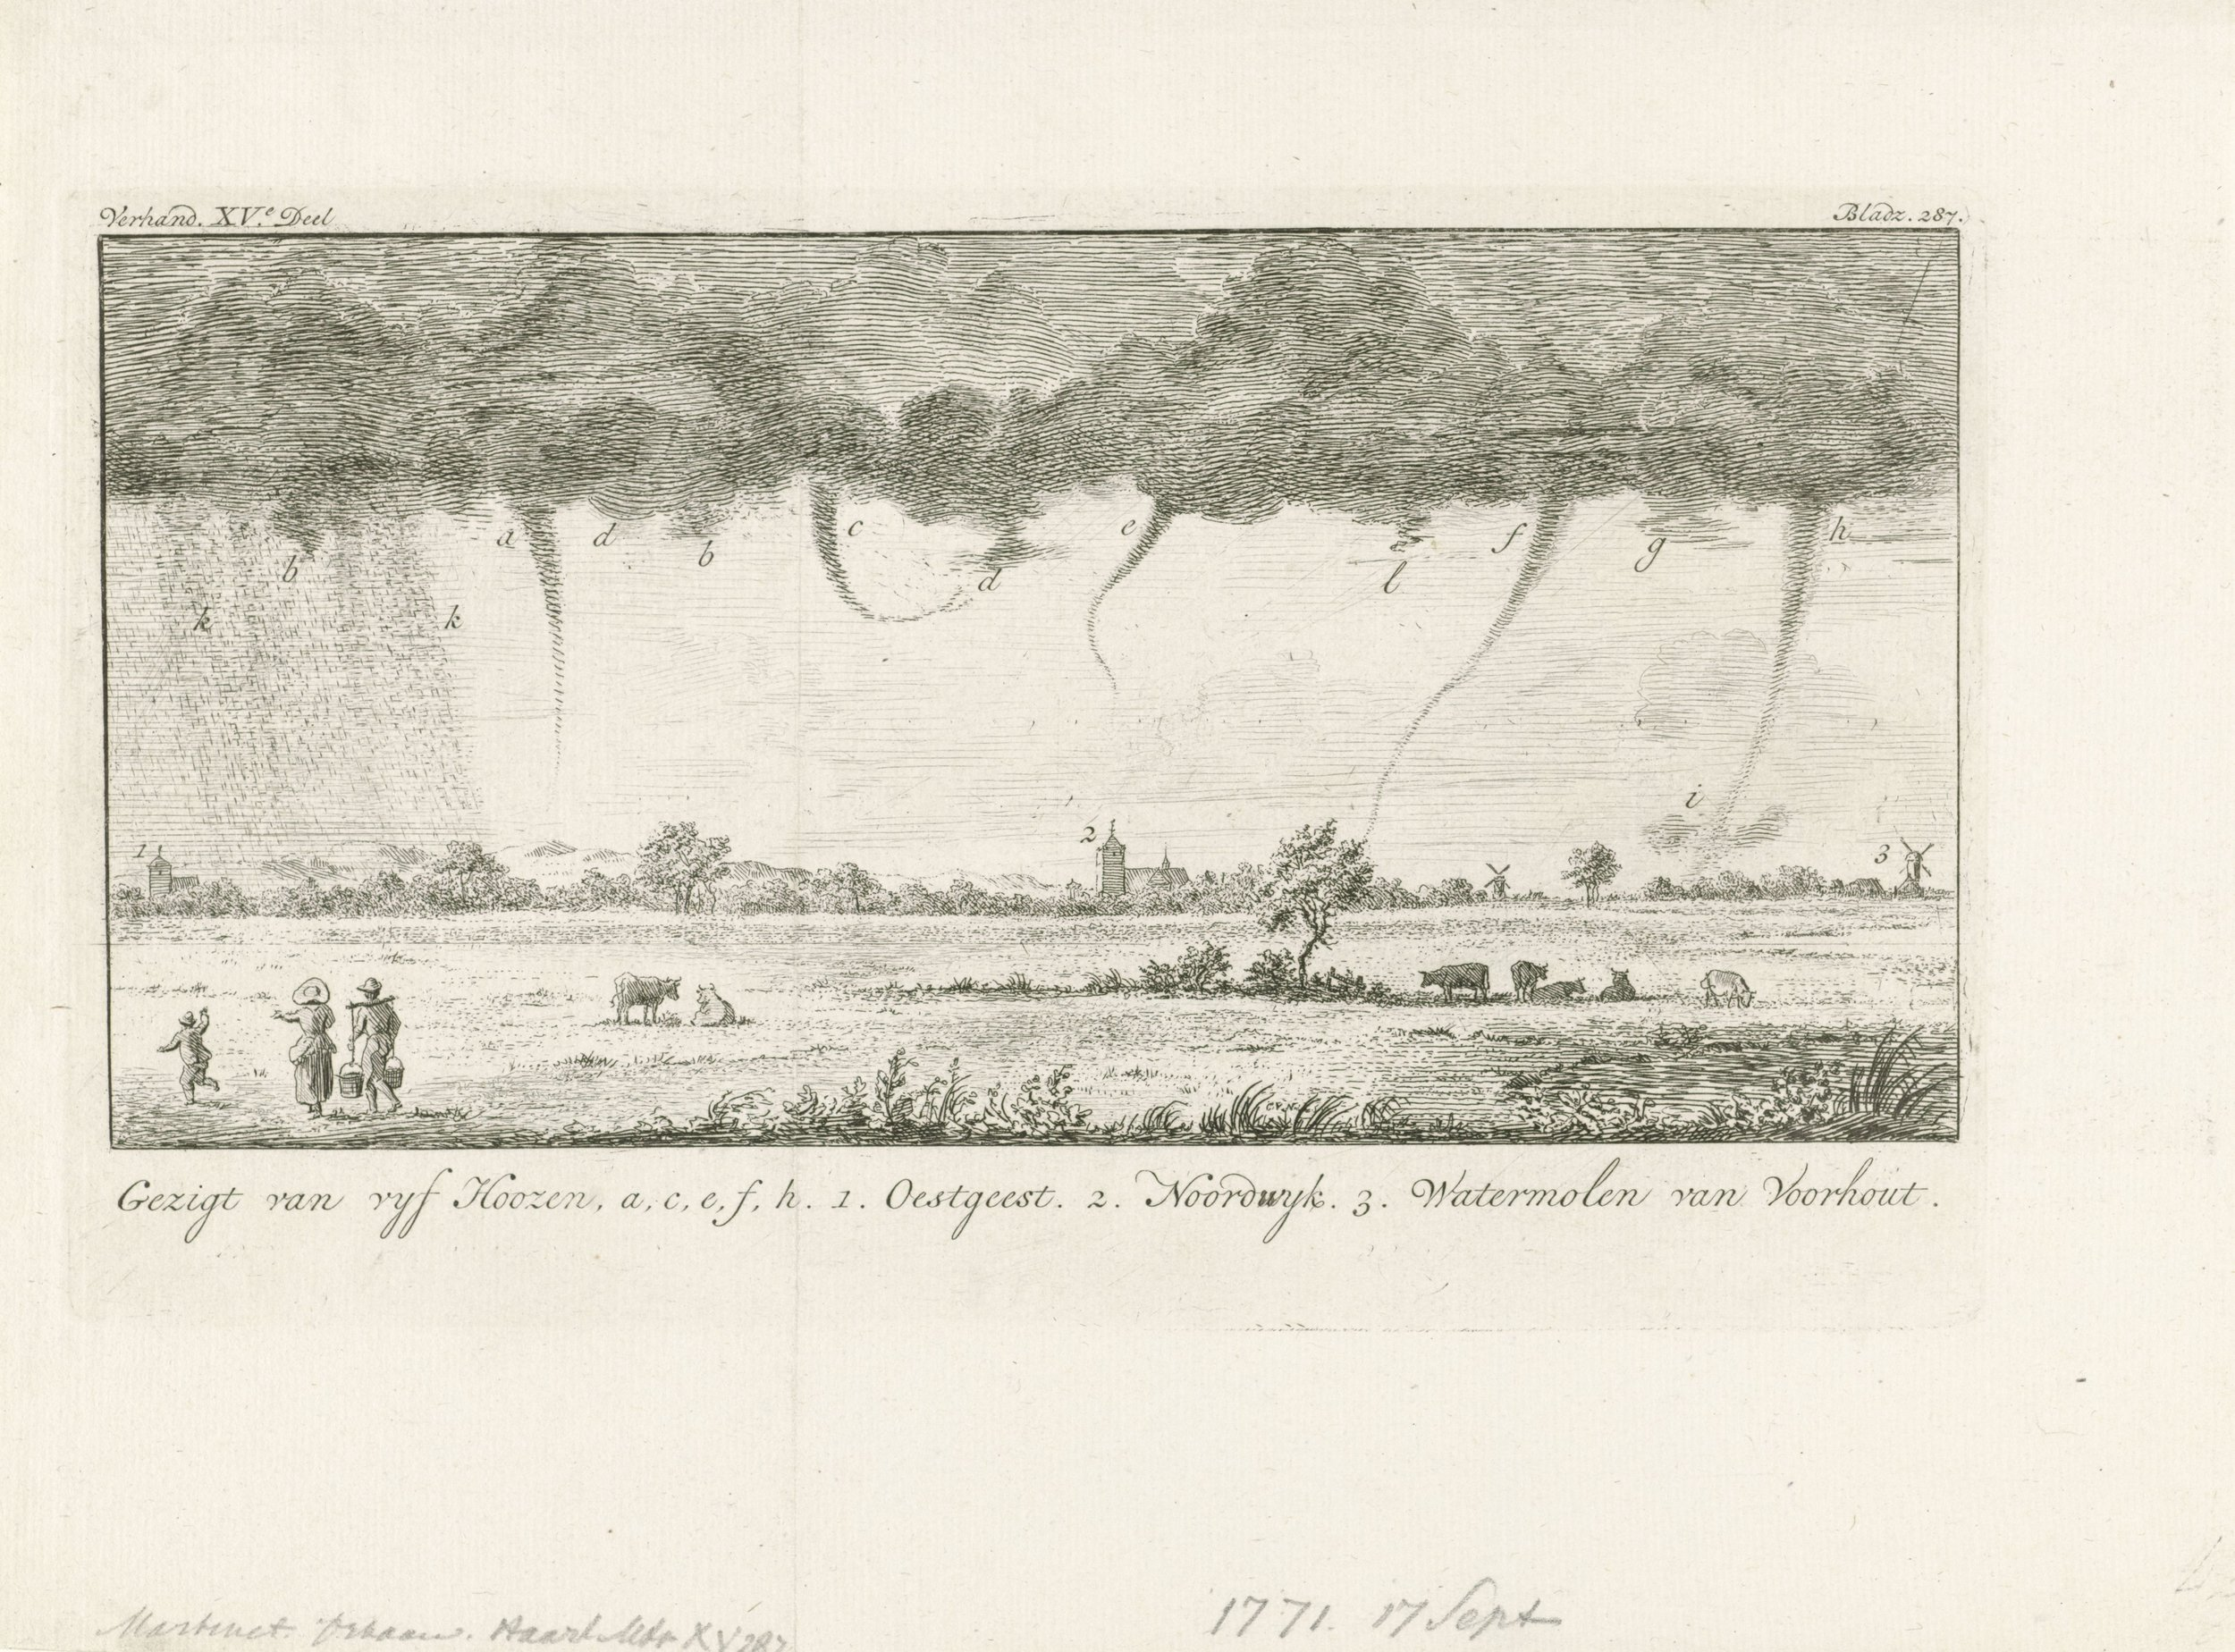 Waterspouts (a, c, e, f, h) observed from  Leiden  on 17 September 1771. In the distance   Oegstgeest   (1),  Noordwijk  (2), and  Voorhout  (3).   reference:  e  tching     from   Rijksmuseum